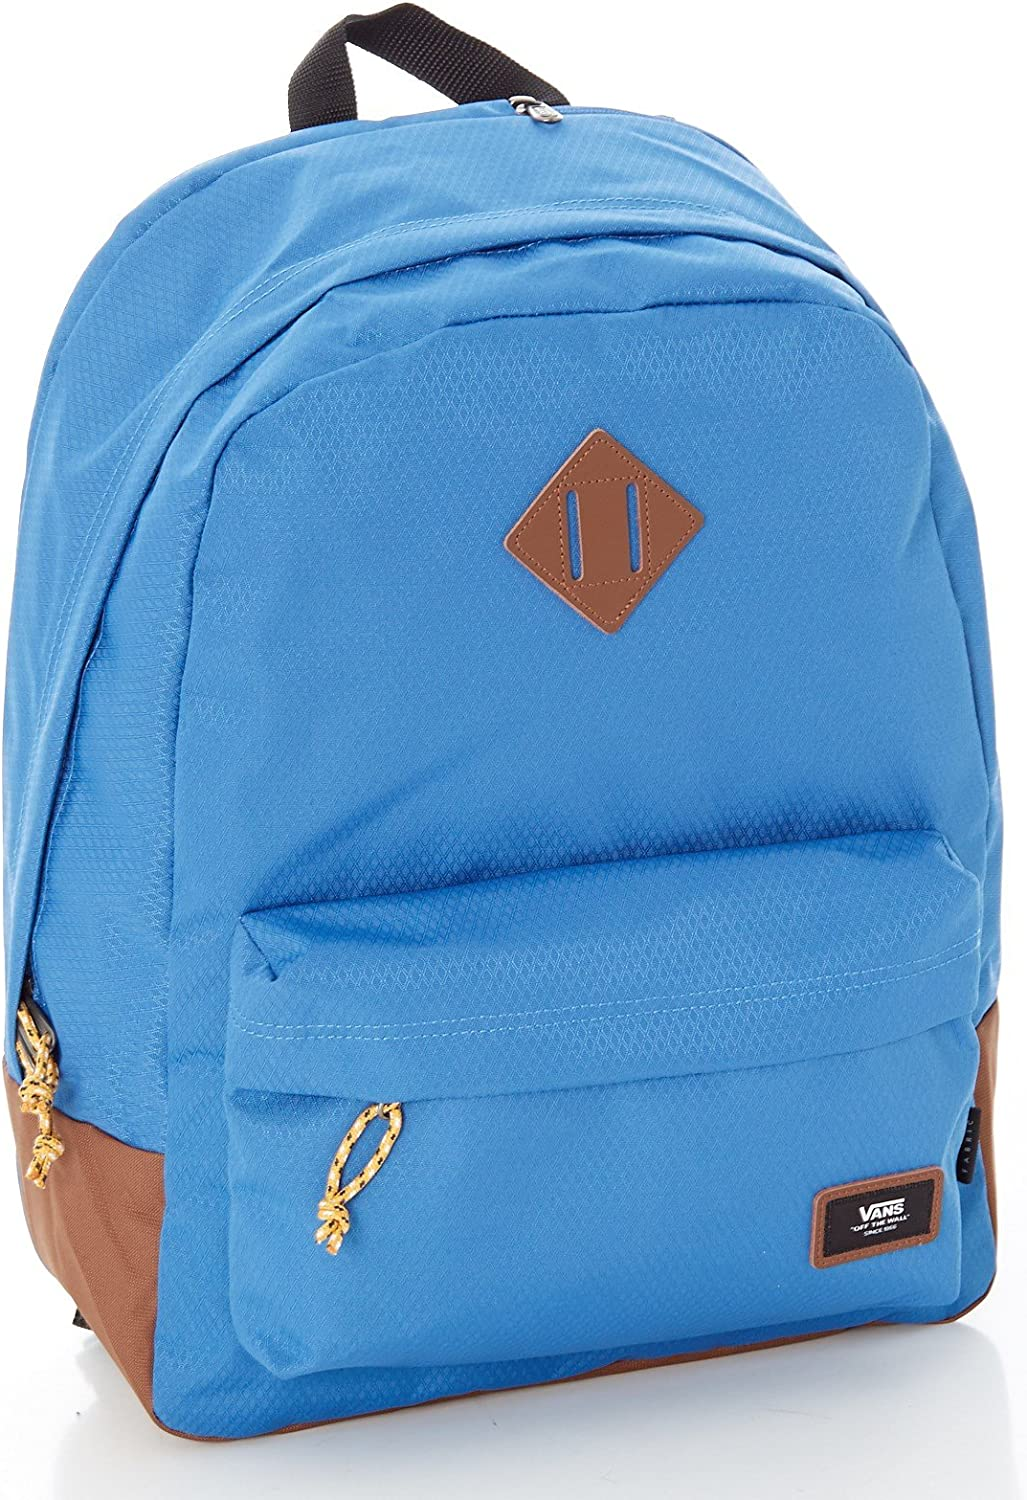 Vans Old SKOOL Plus Backpack Mochila Tipo Casual, 44 cm, 23 Liters, Azul (DelftToffee)